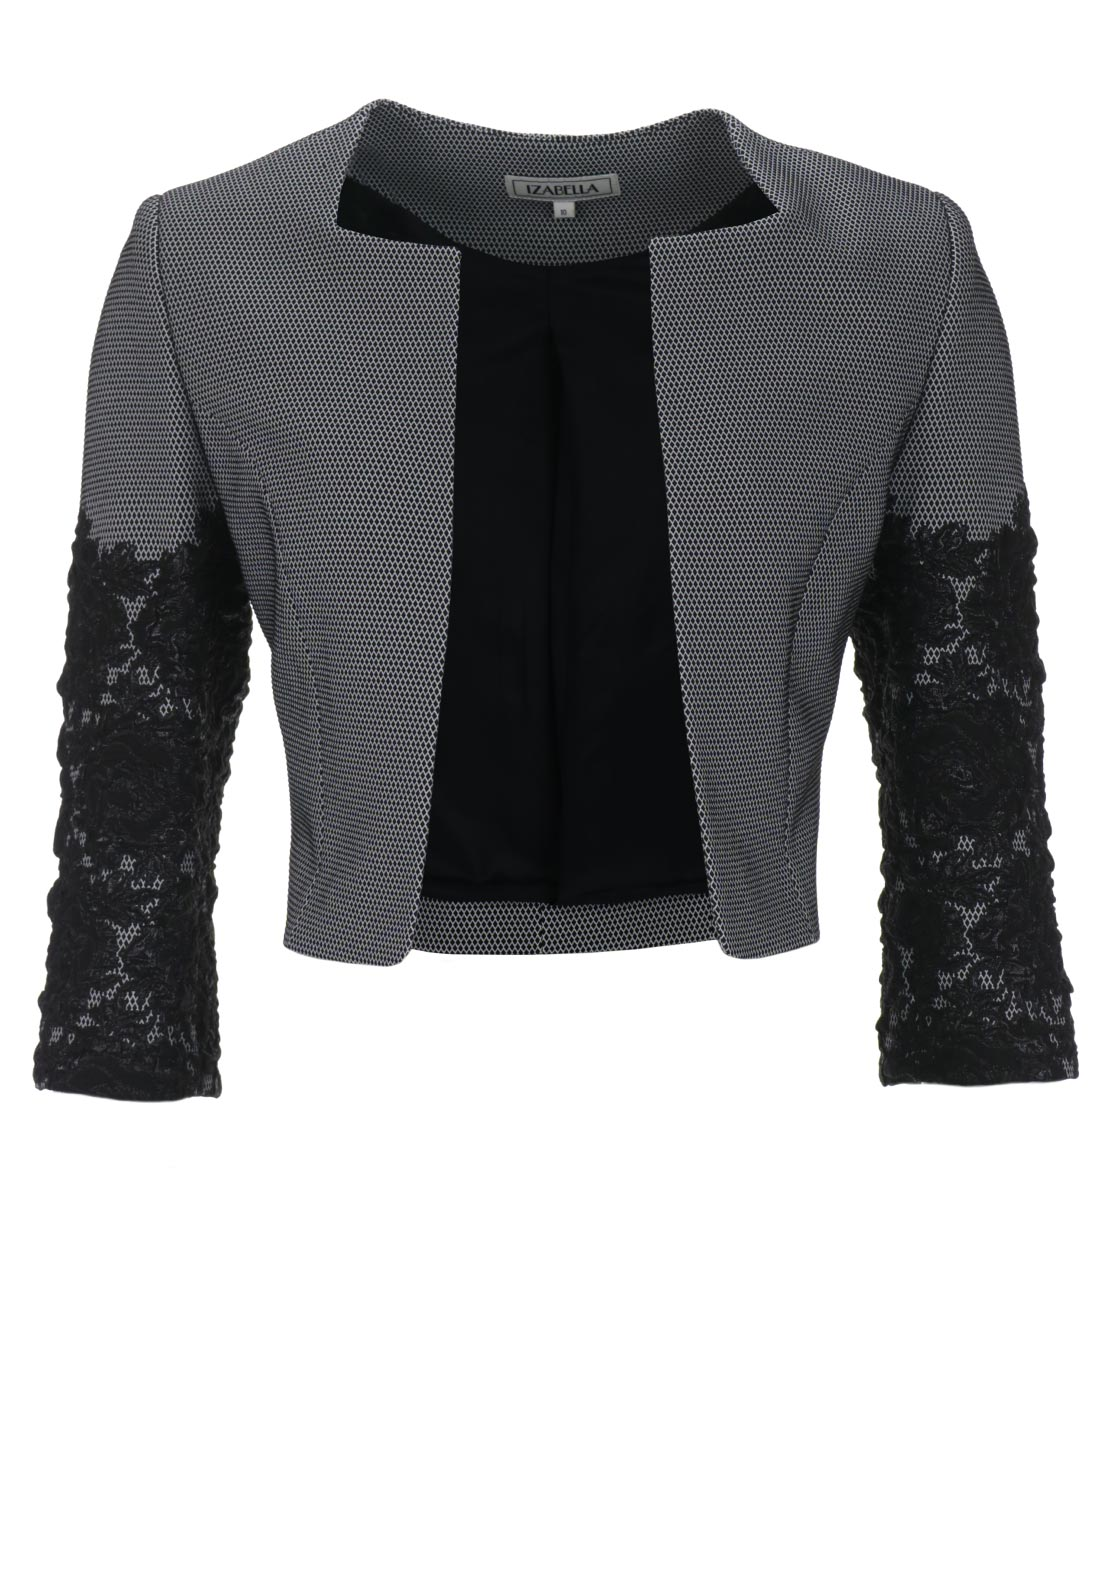 Izabella Textured Sleeve Diamond Print Bolero Jacket, Black